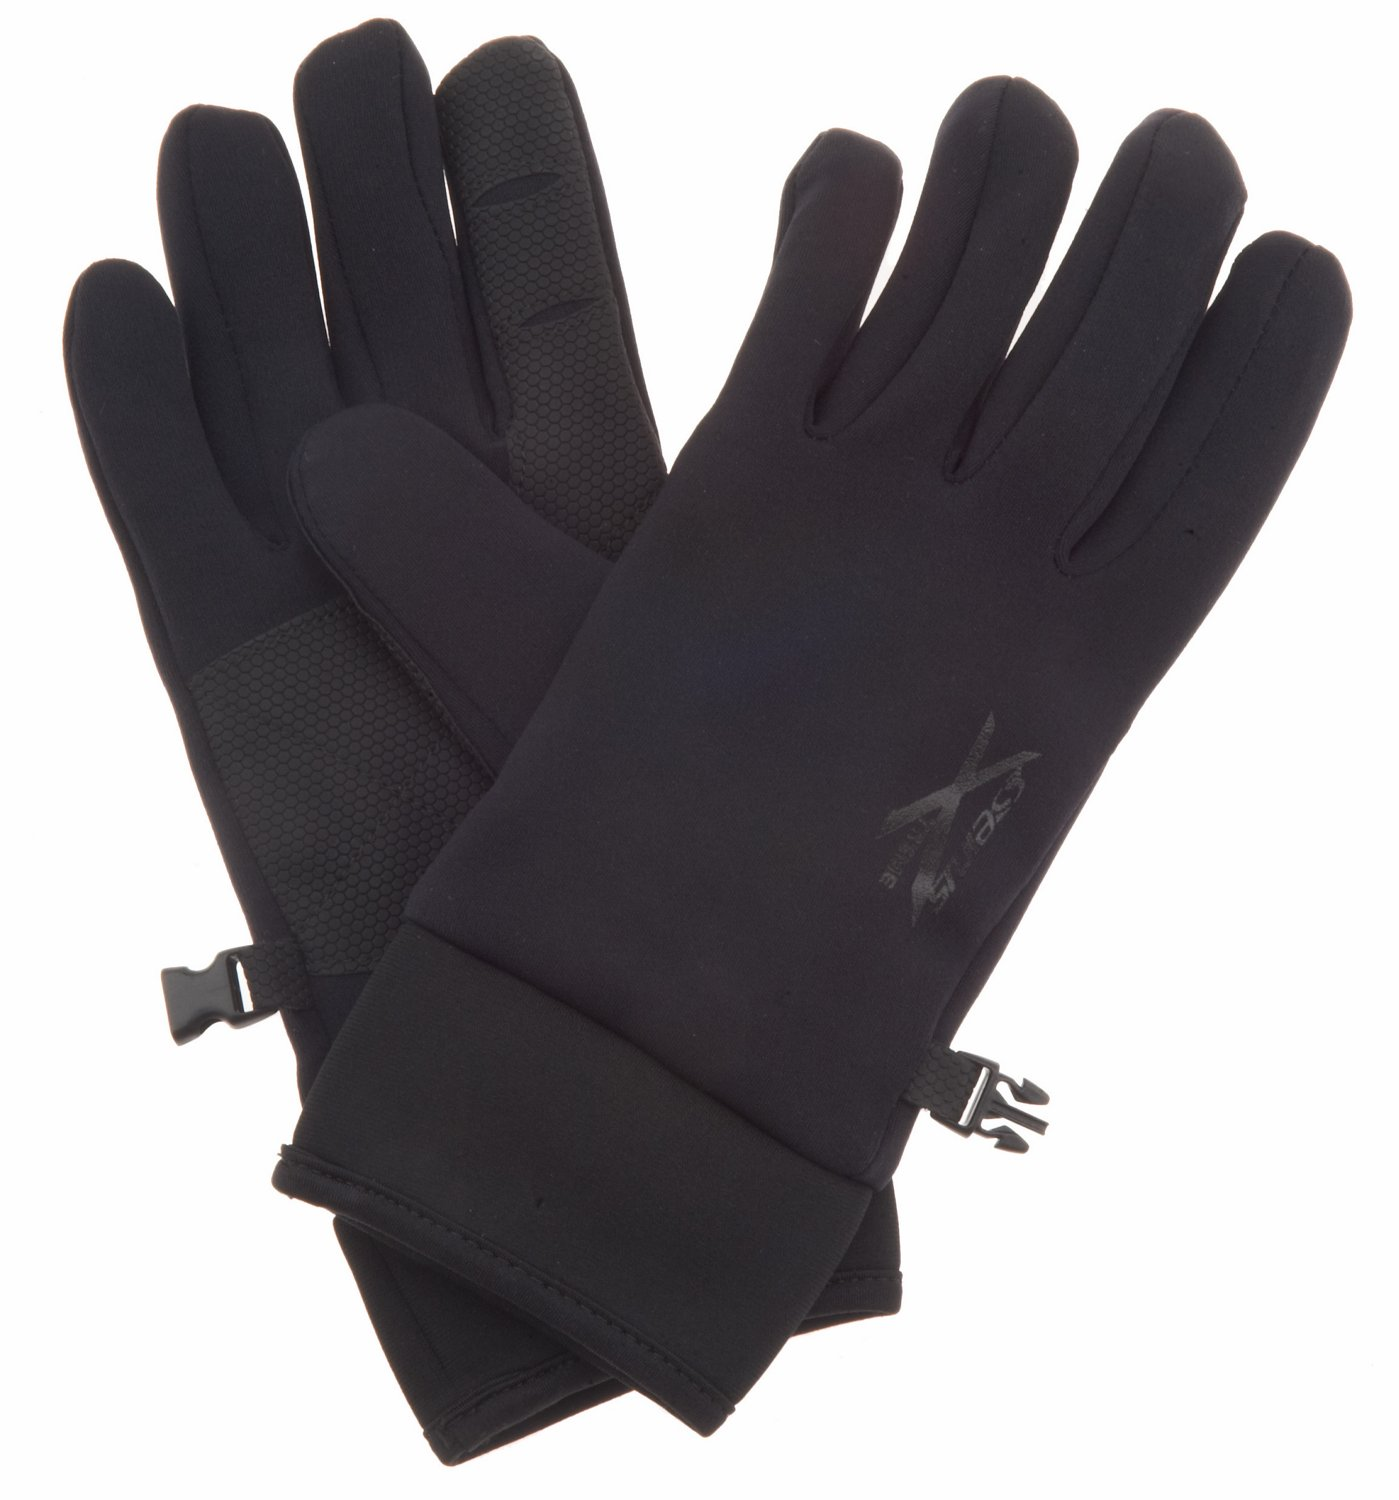 The sizes of womens gloves. How to choose the right product